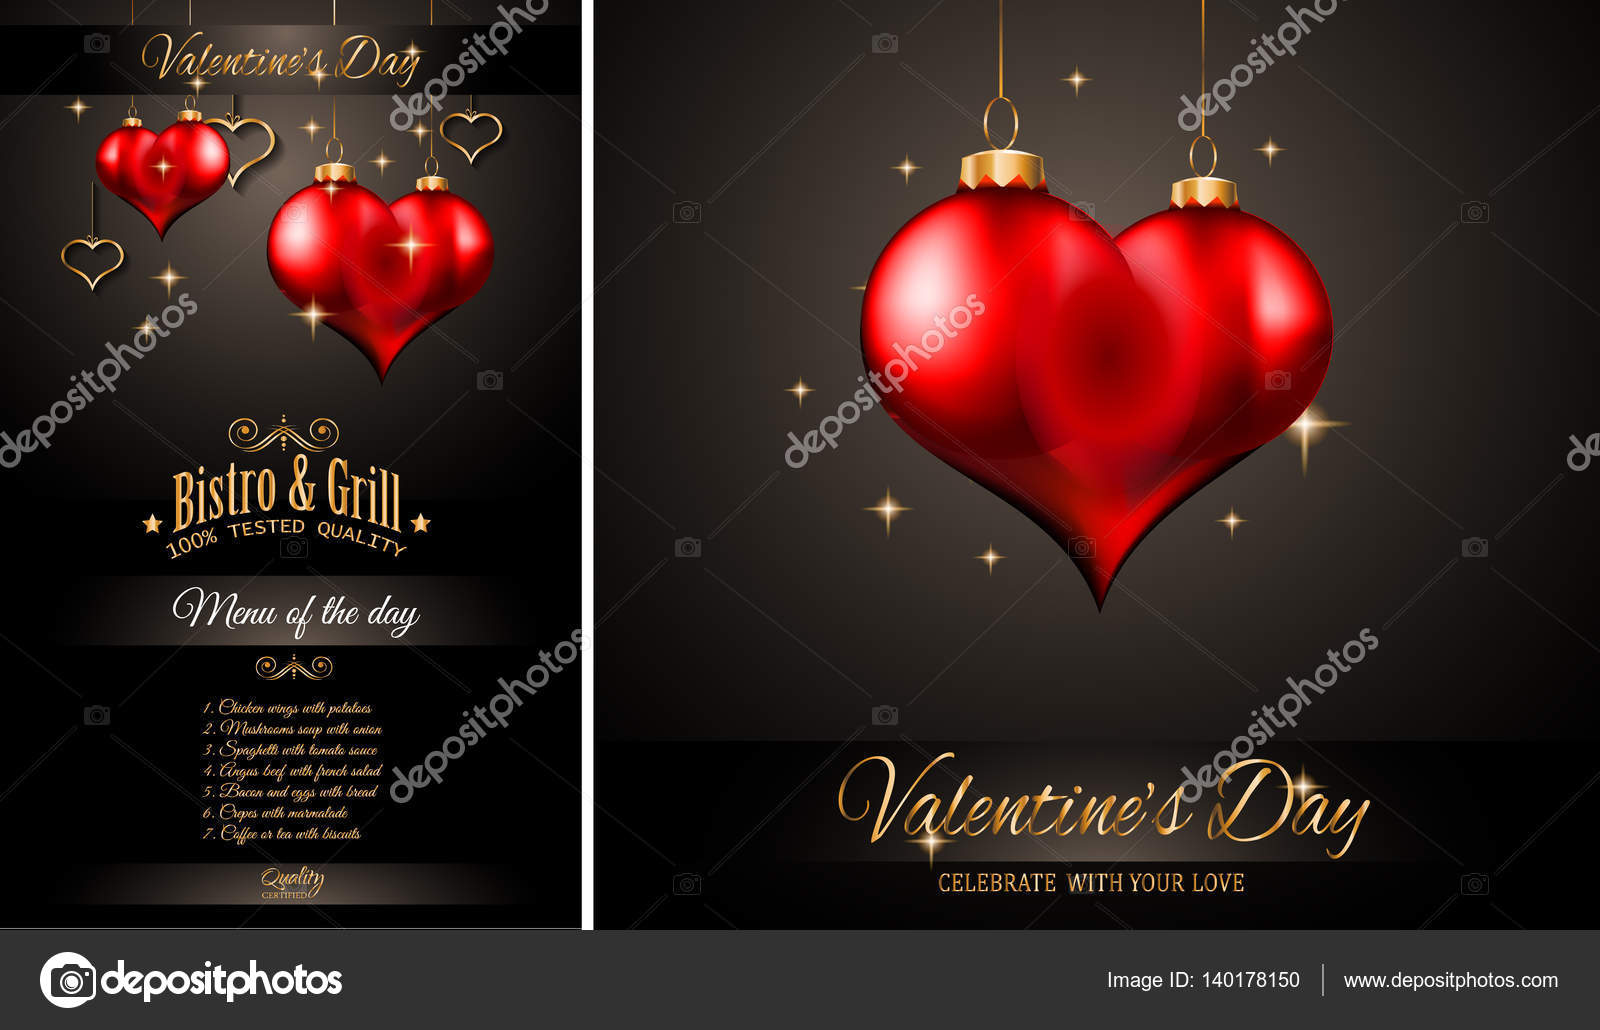 Valentine S Day Restaurant Menu Template Stock Vector C Davidarts